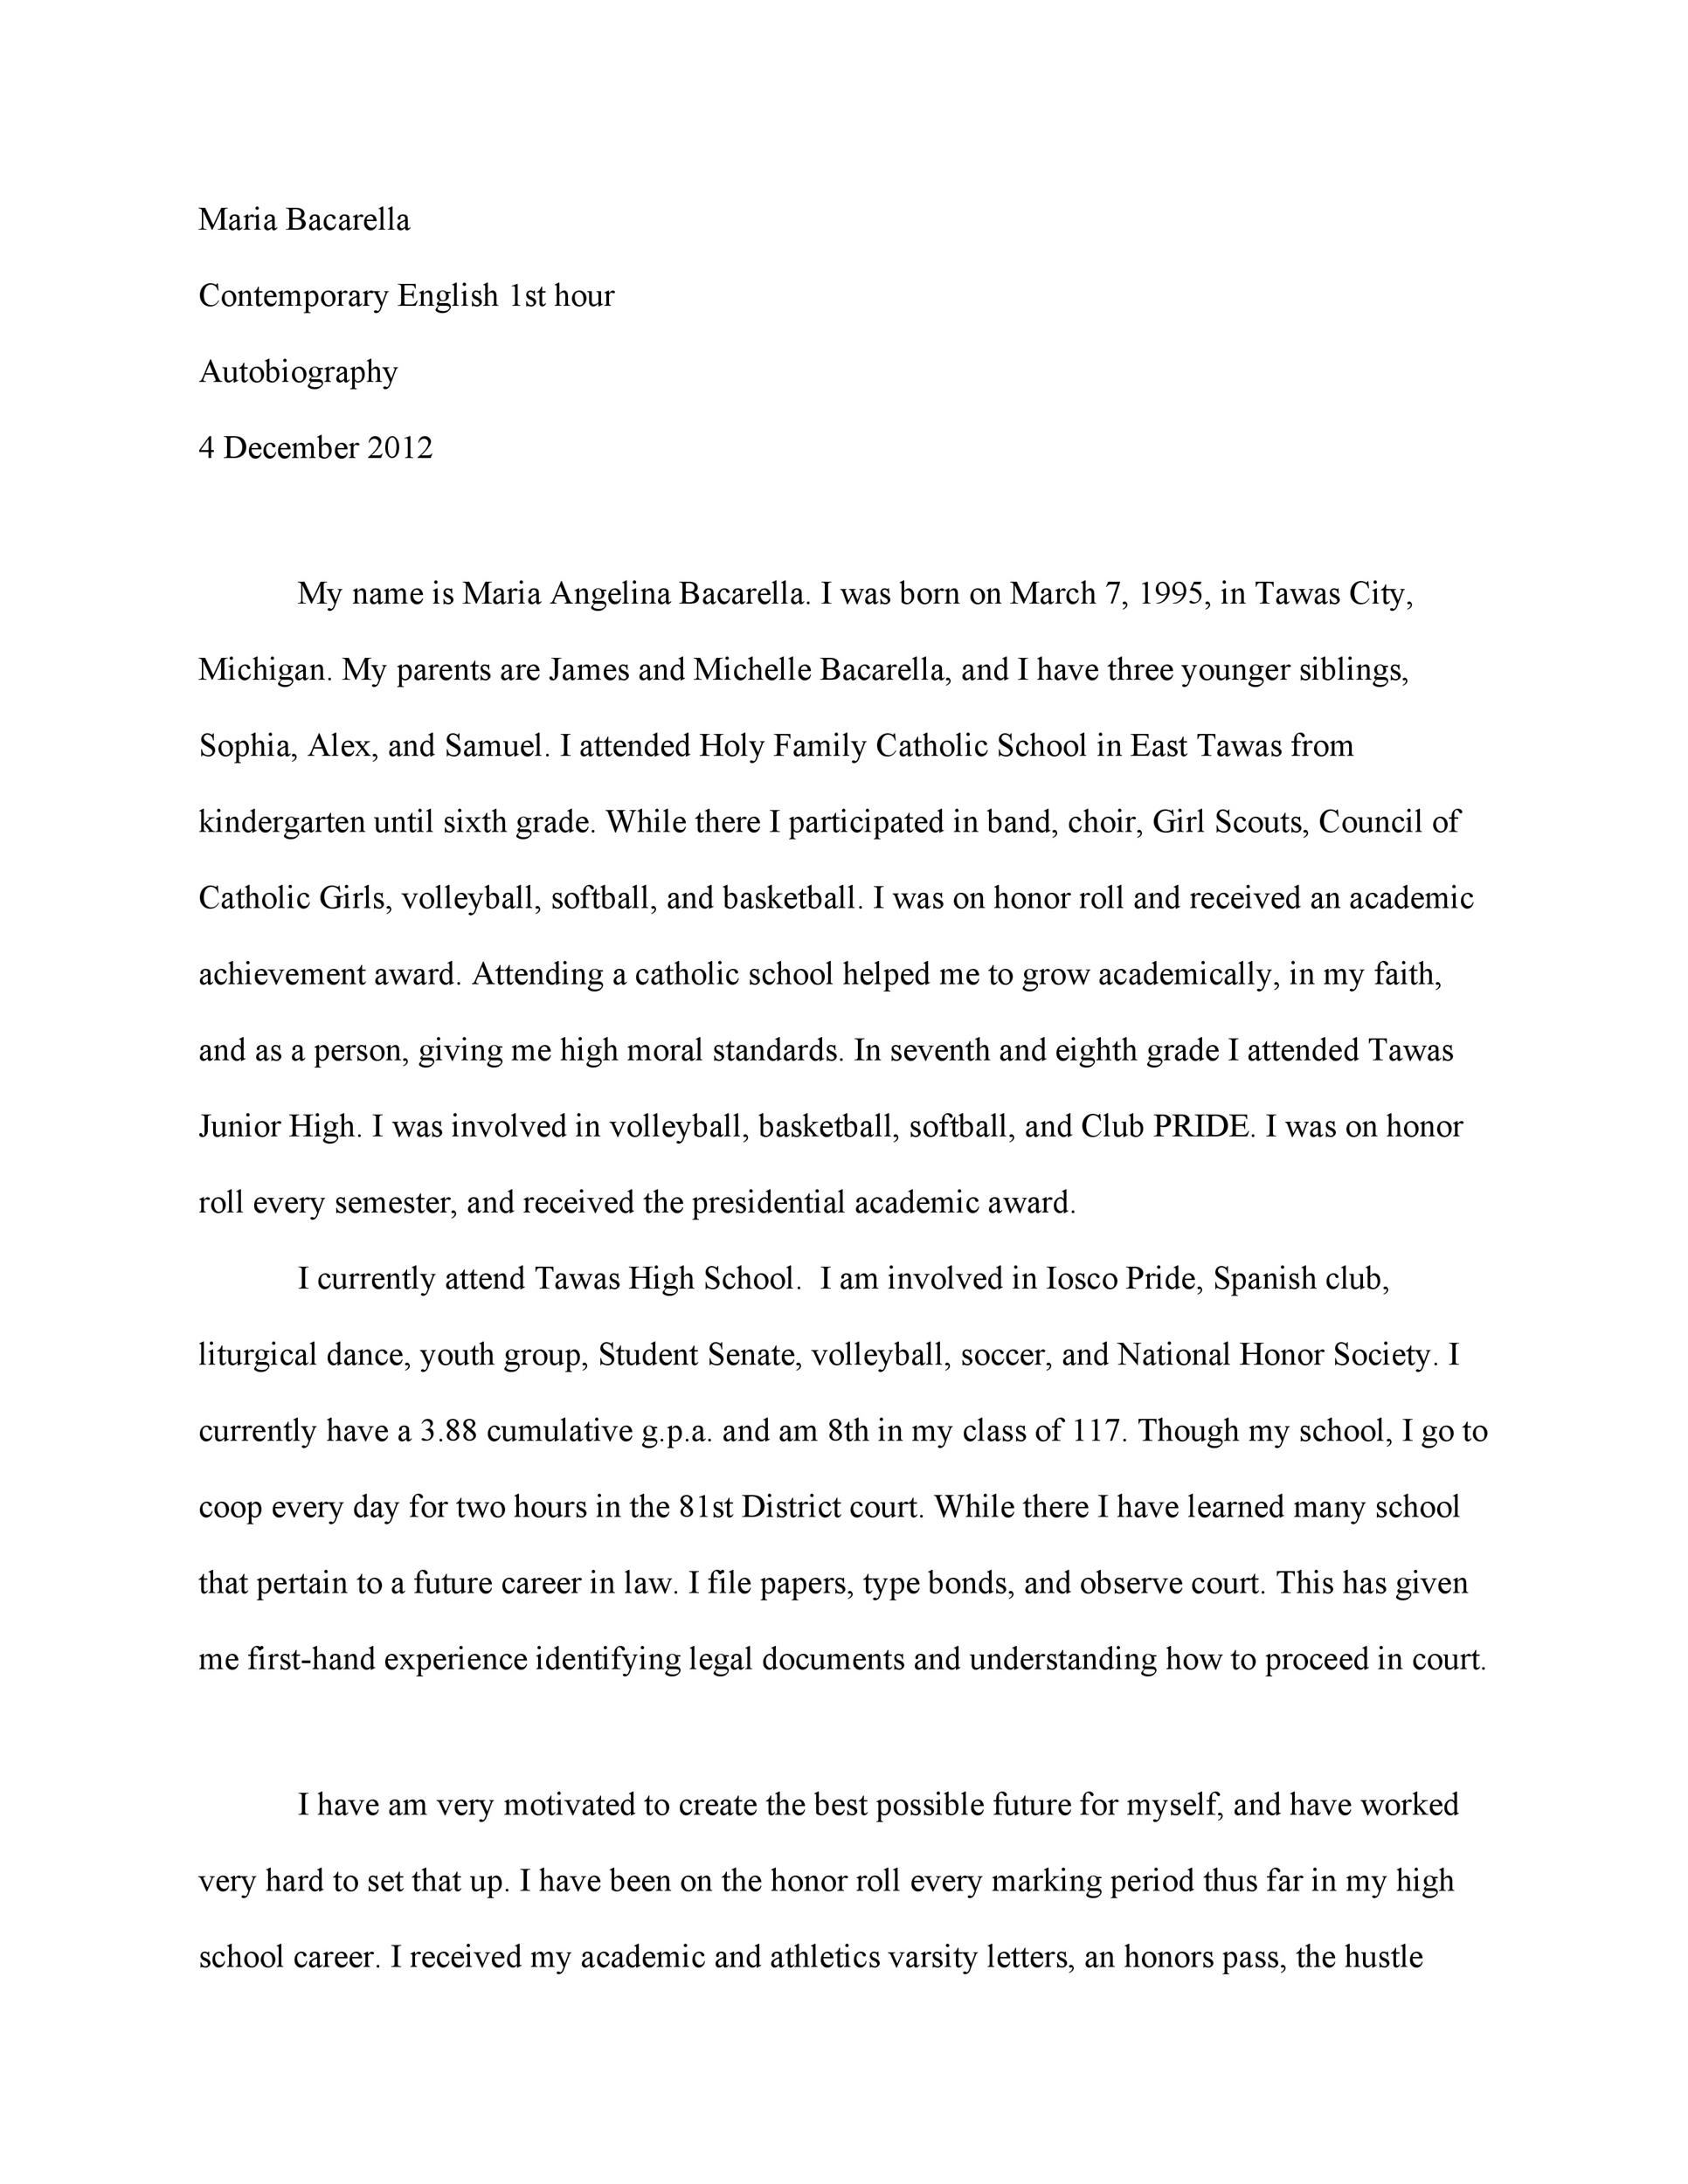 Biography sample essay